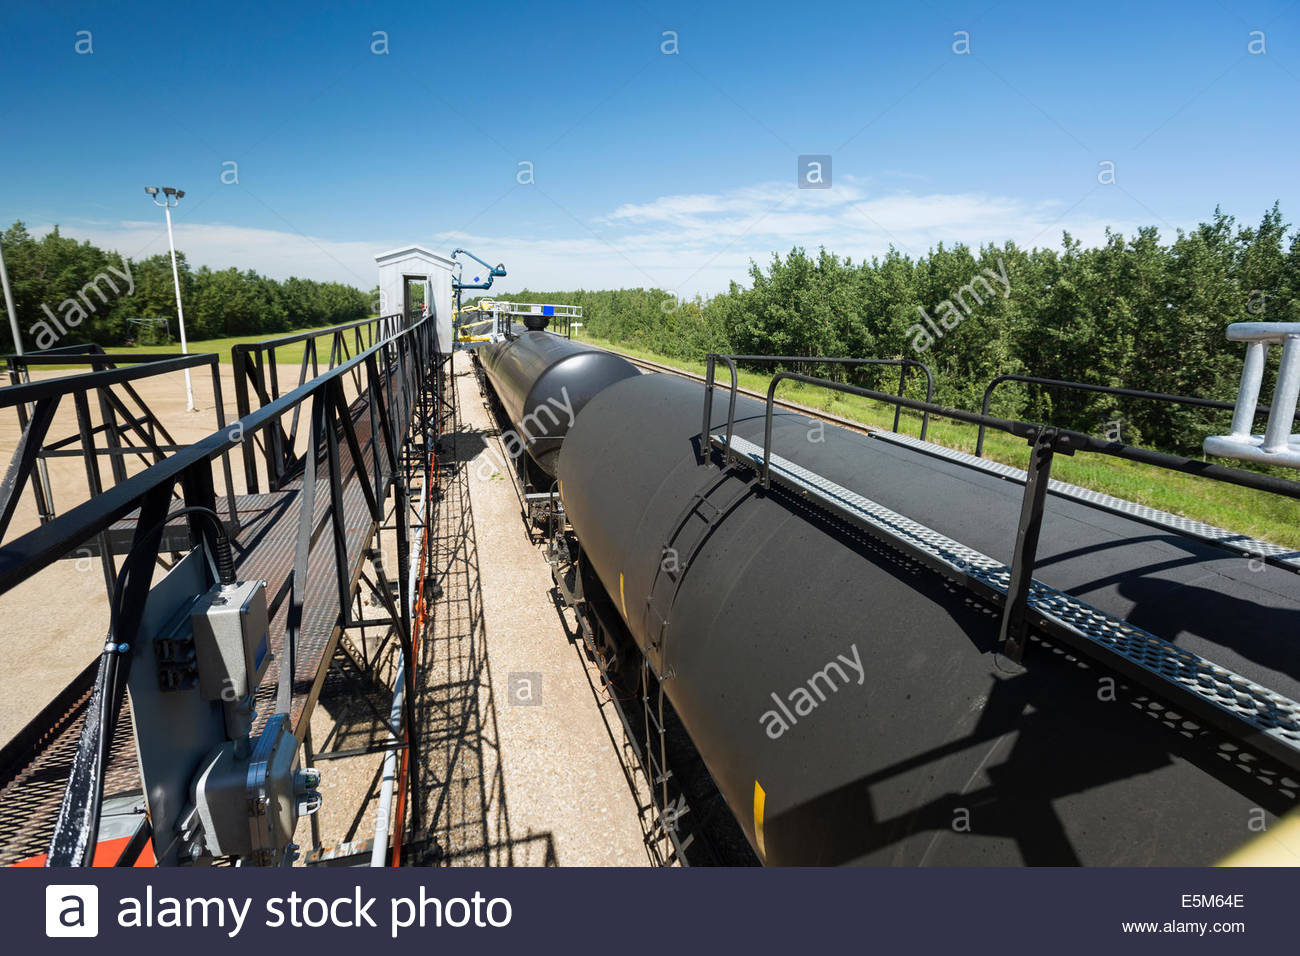 Liquid freight train transporting natural gas - Stock Image